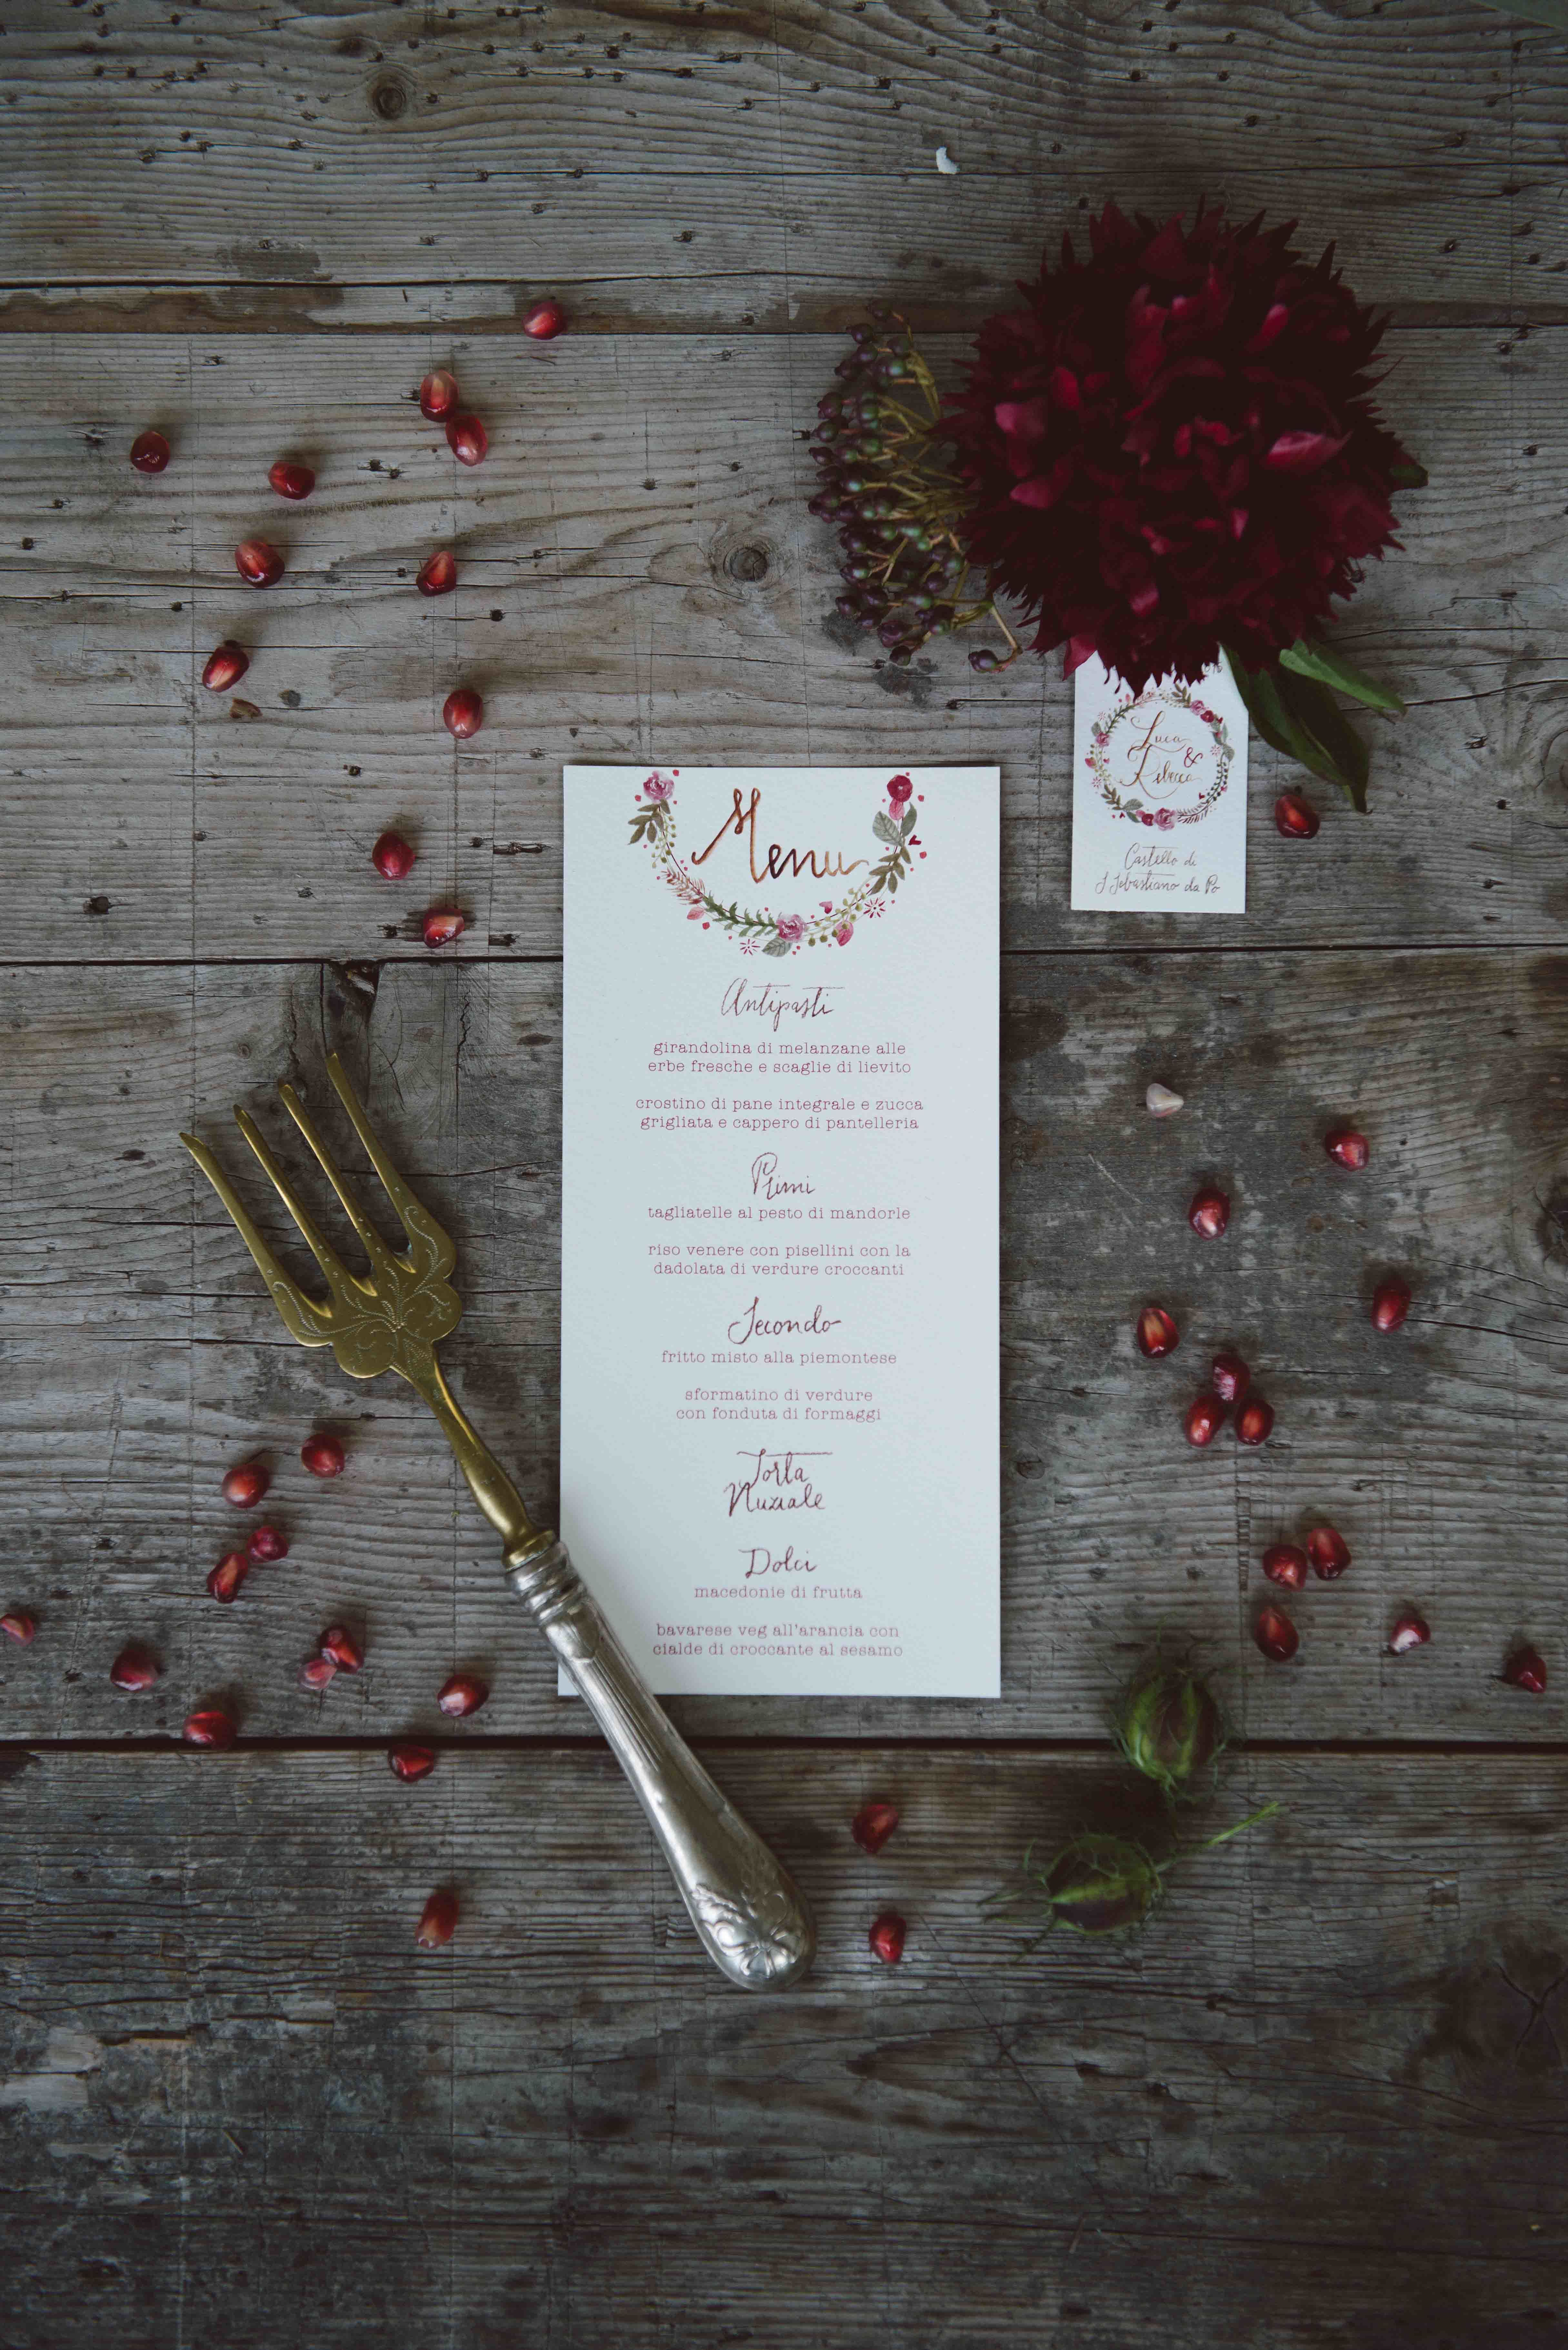 Matrimonio In Bordeaux : Menu melograno matrimonio peonia bordeaux studio alispi